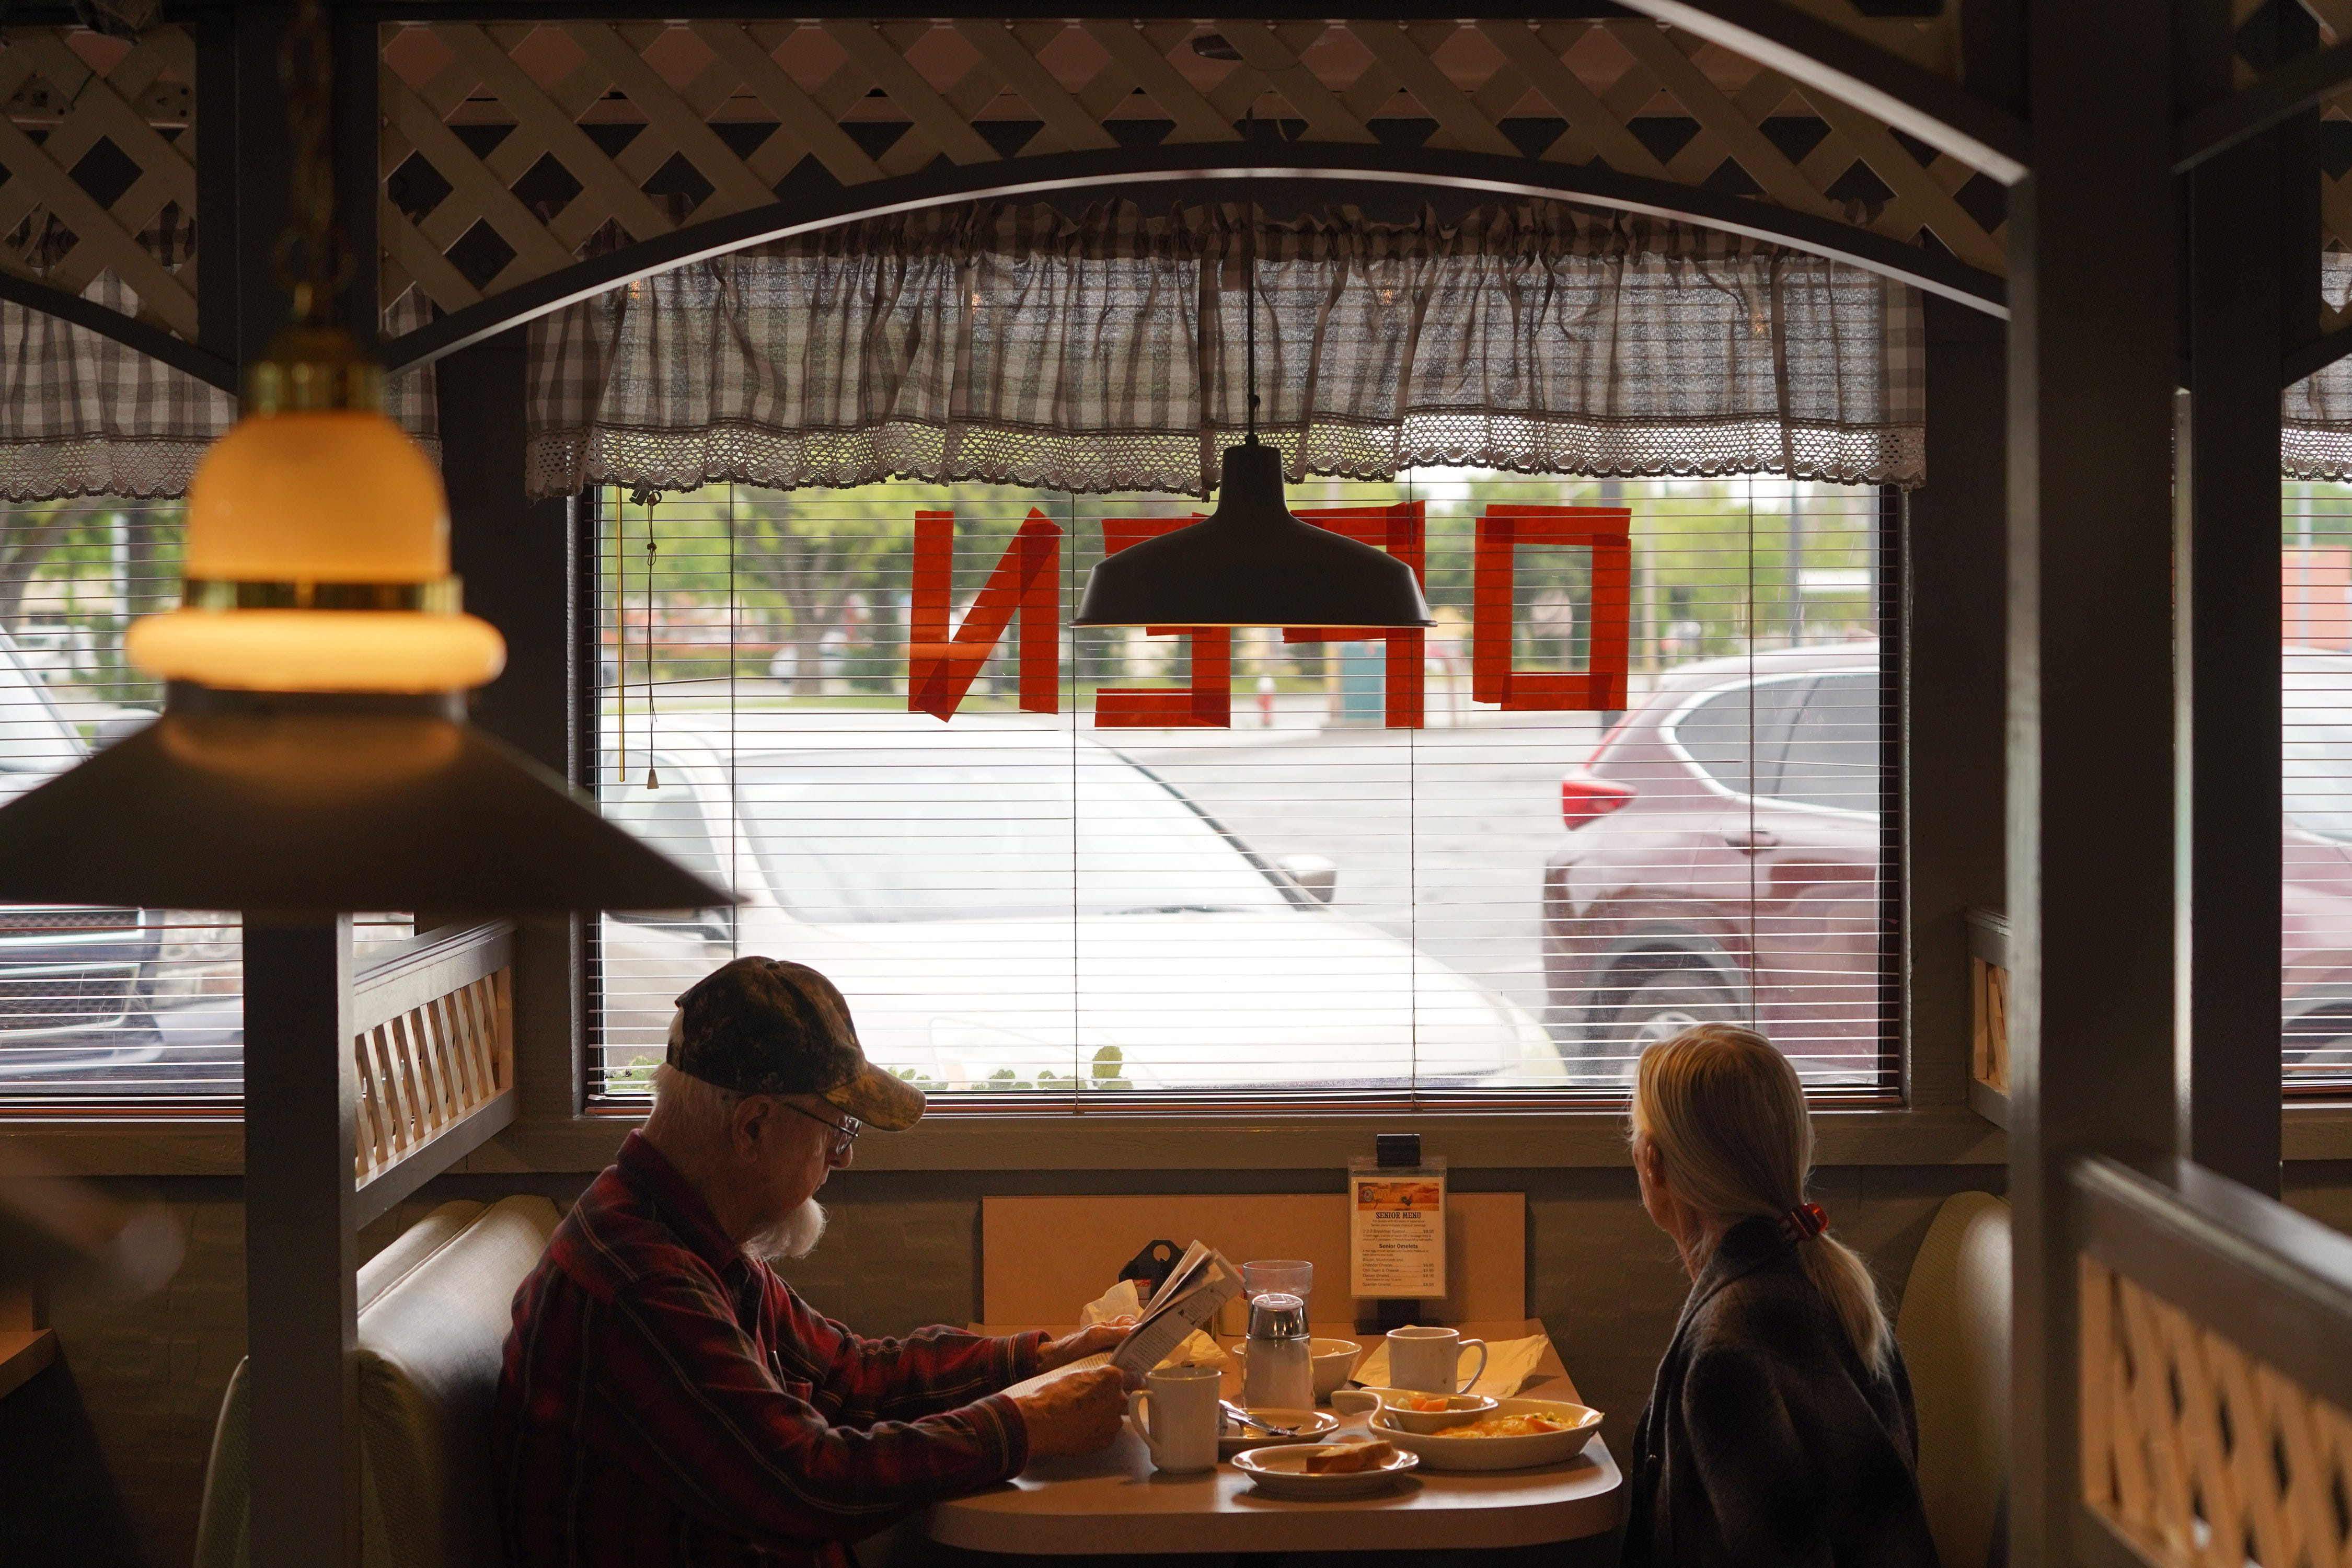 Country Waffles in Redding reopened to diners on Wednesday, May 13, 2020, nearly two months after a March 19 California stay home order, due to the COVID-19 pandemic, forced restaurants in the state to close.